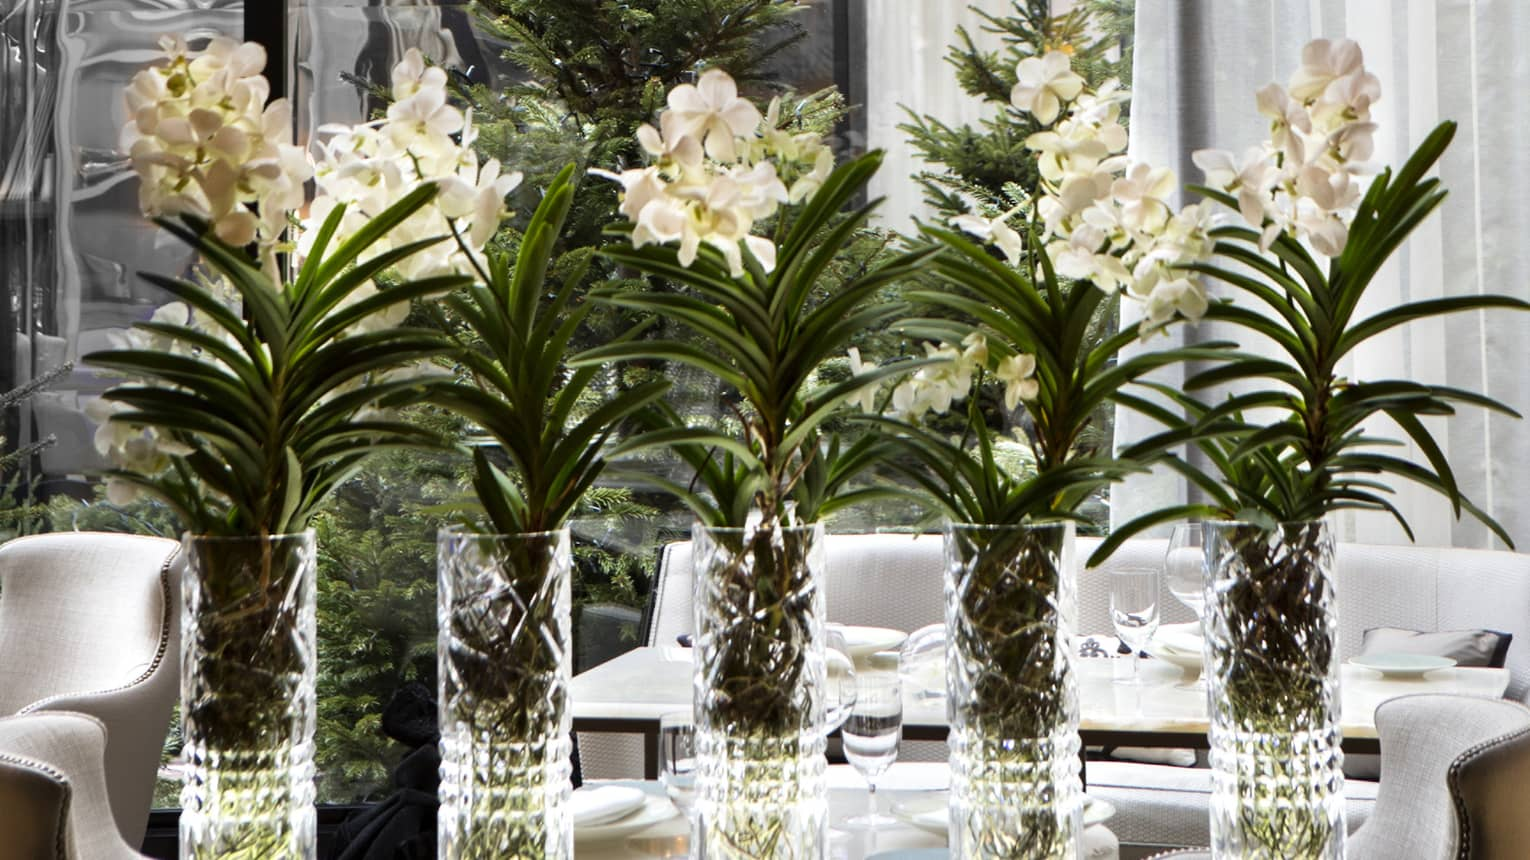 Tall crystal vases with white flowers